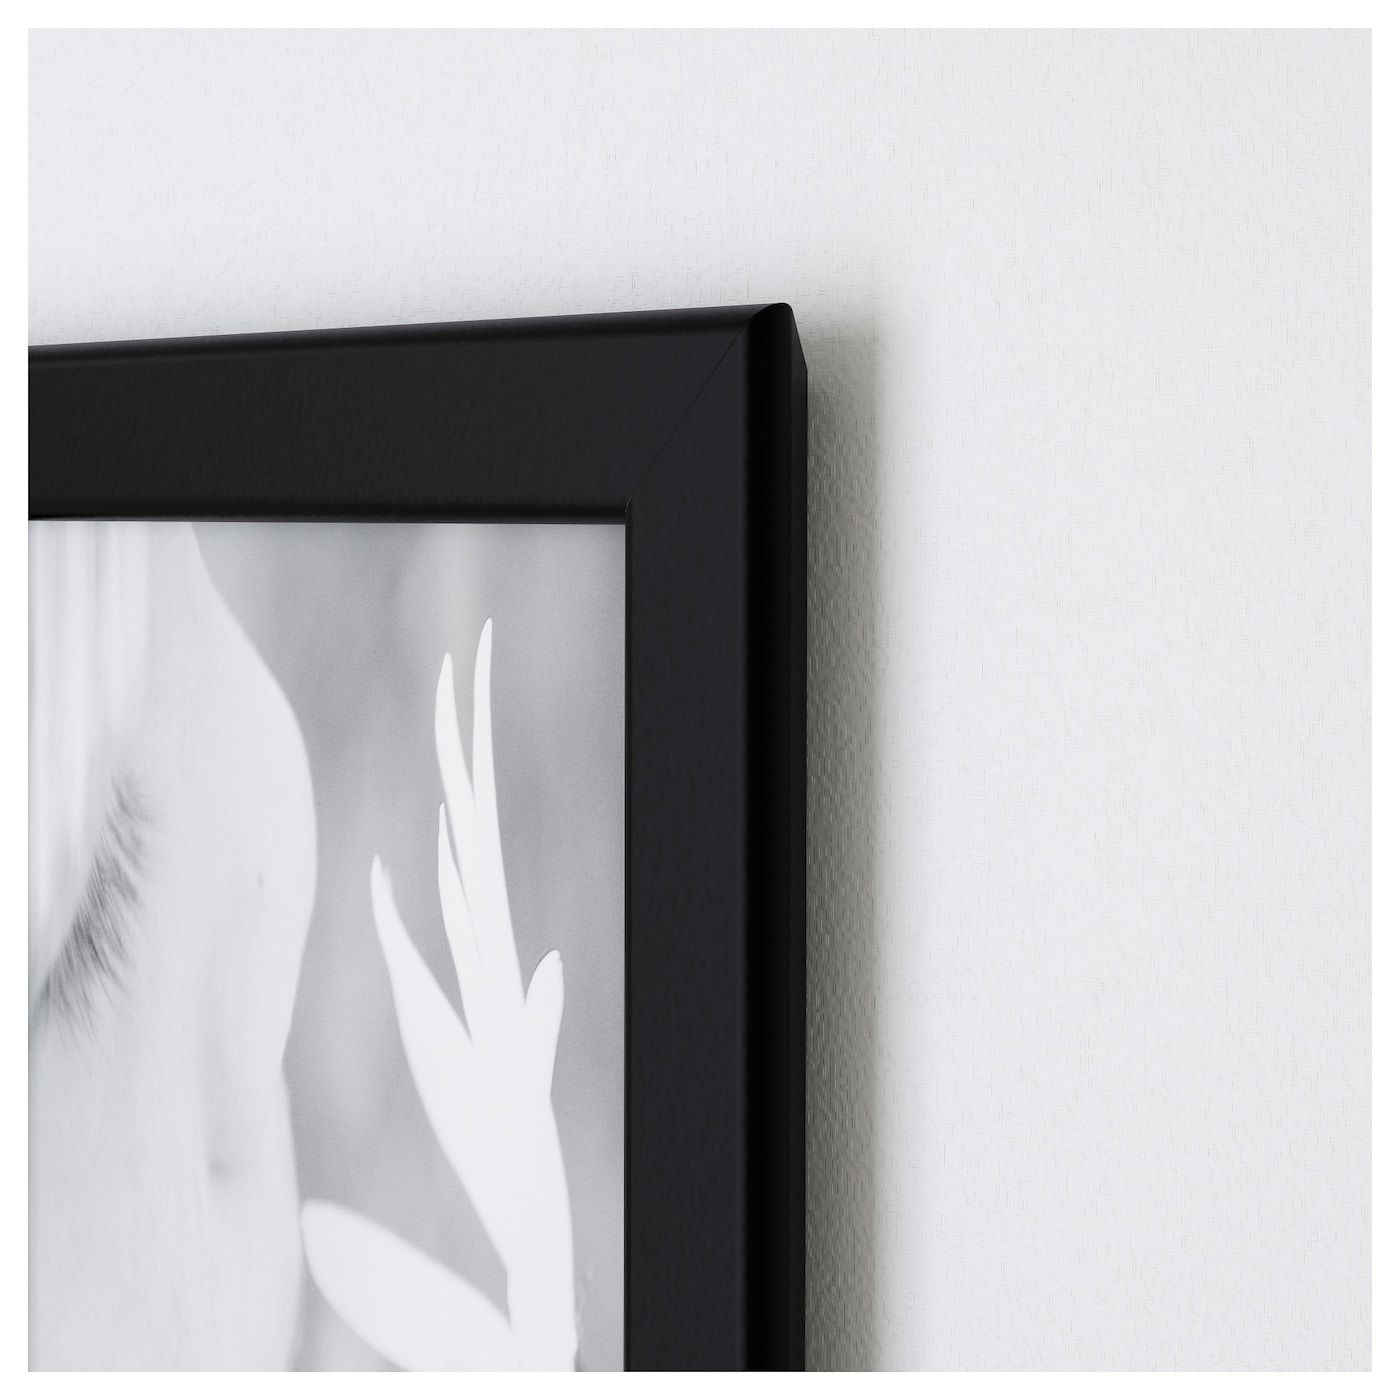 Fiskbo Frame Black 12x16 Ikea Frame Decorating With Pictures Frames On Wall